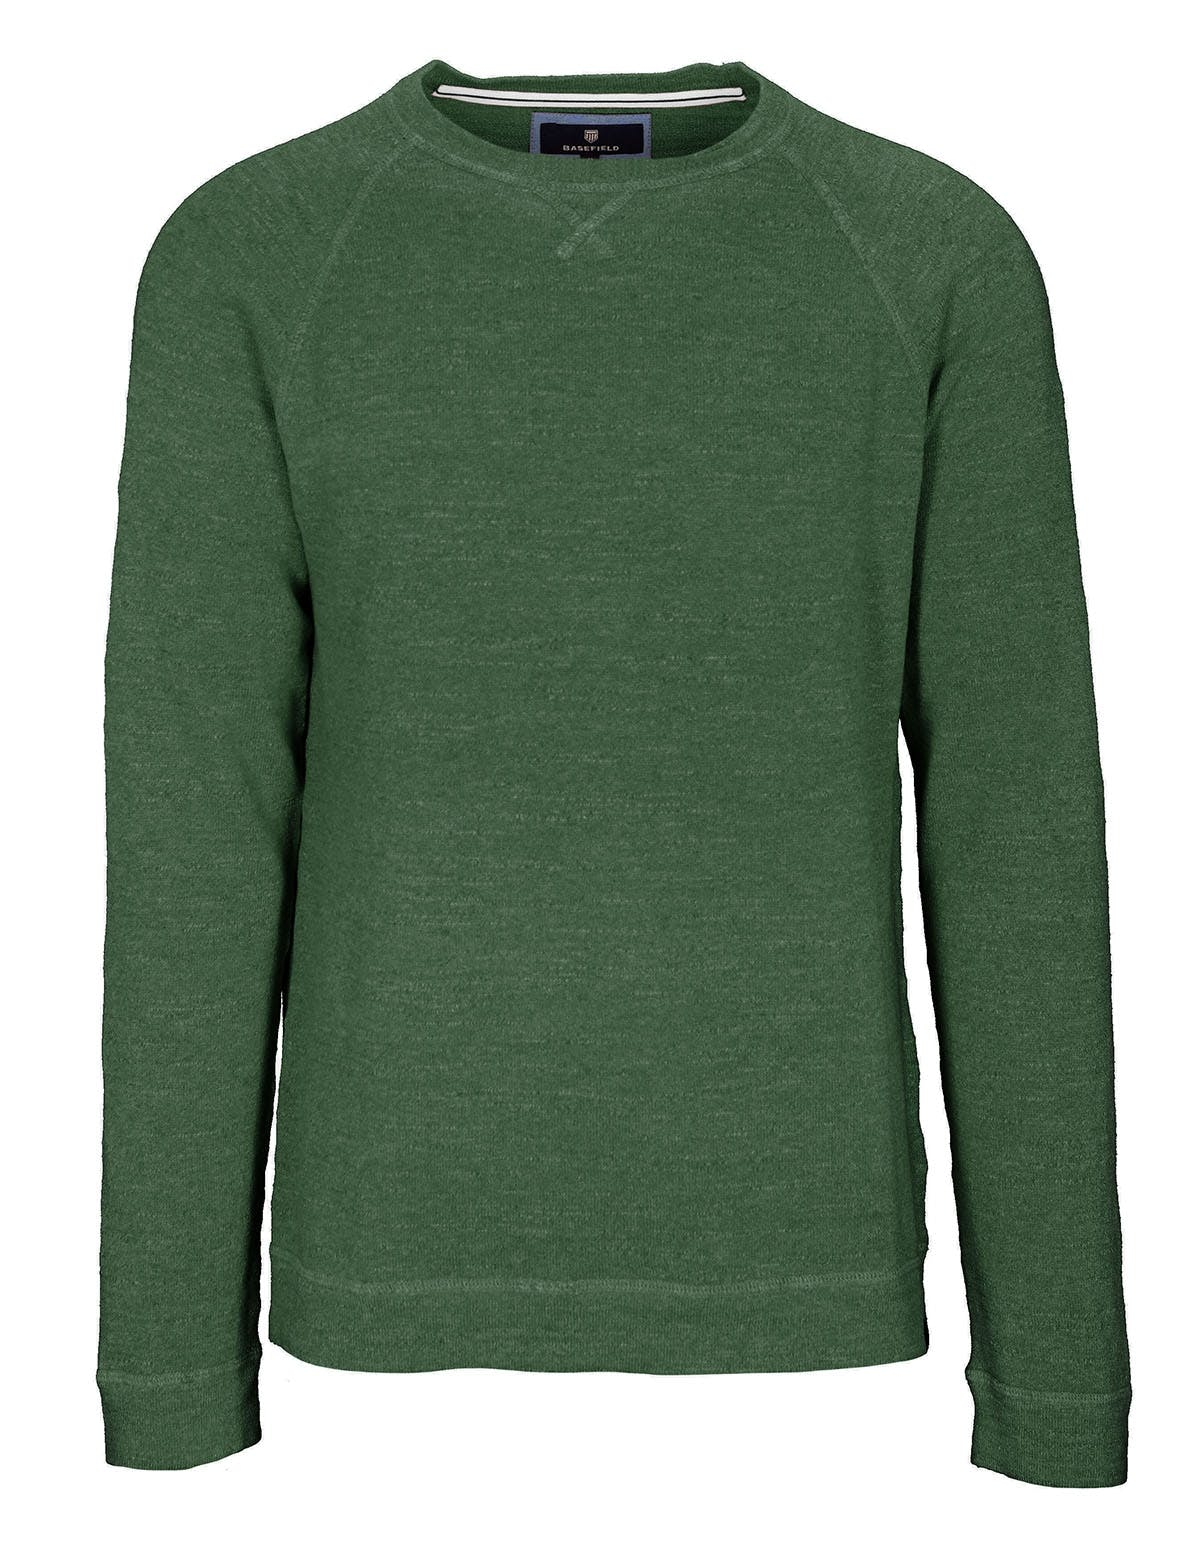 ORGANIC COTTON Pullover - Palm Green